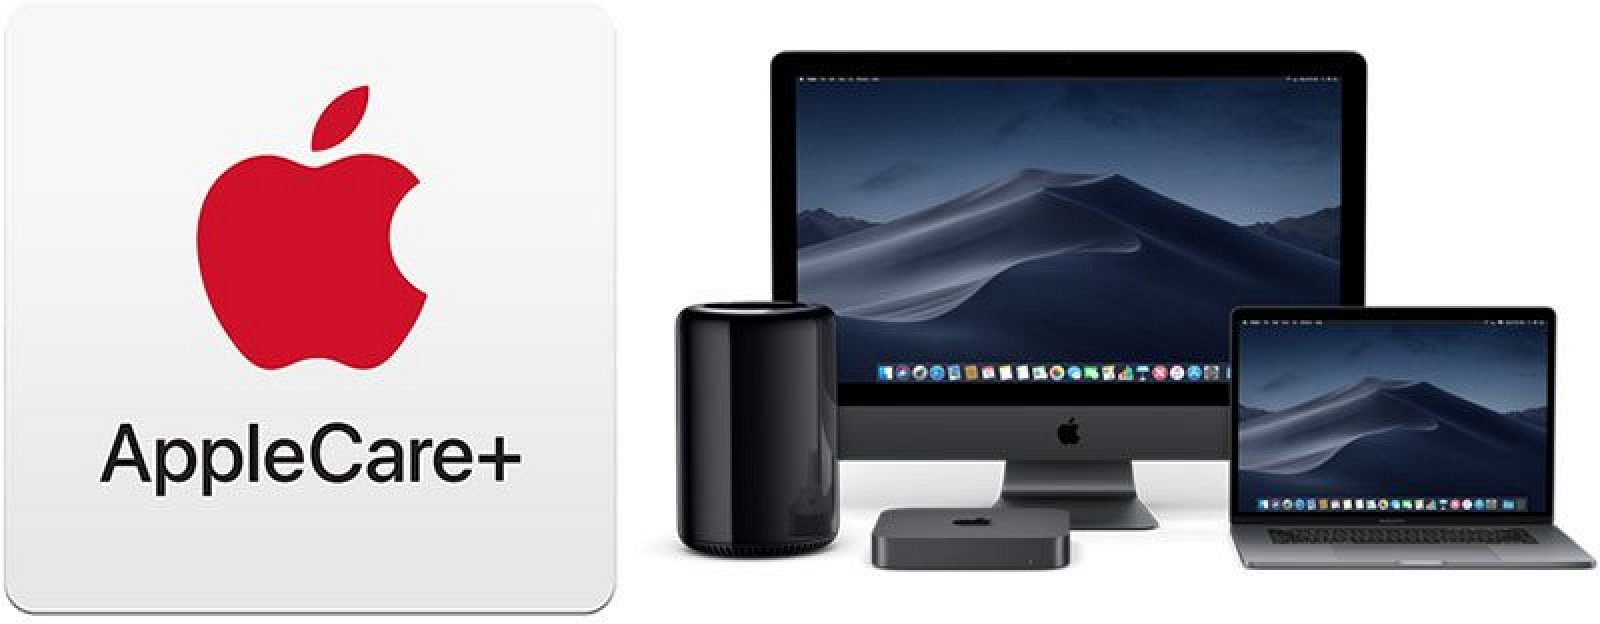 AppleCare+ for Mac With Accidental Damage Coverage Expands to Canada,  Mexico, and Europe - MacRumors